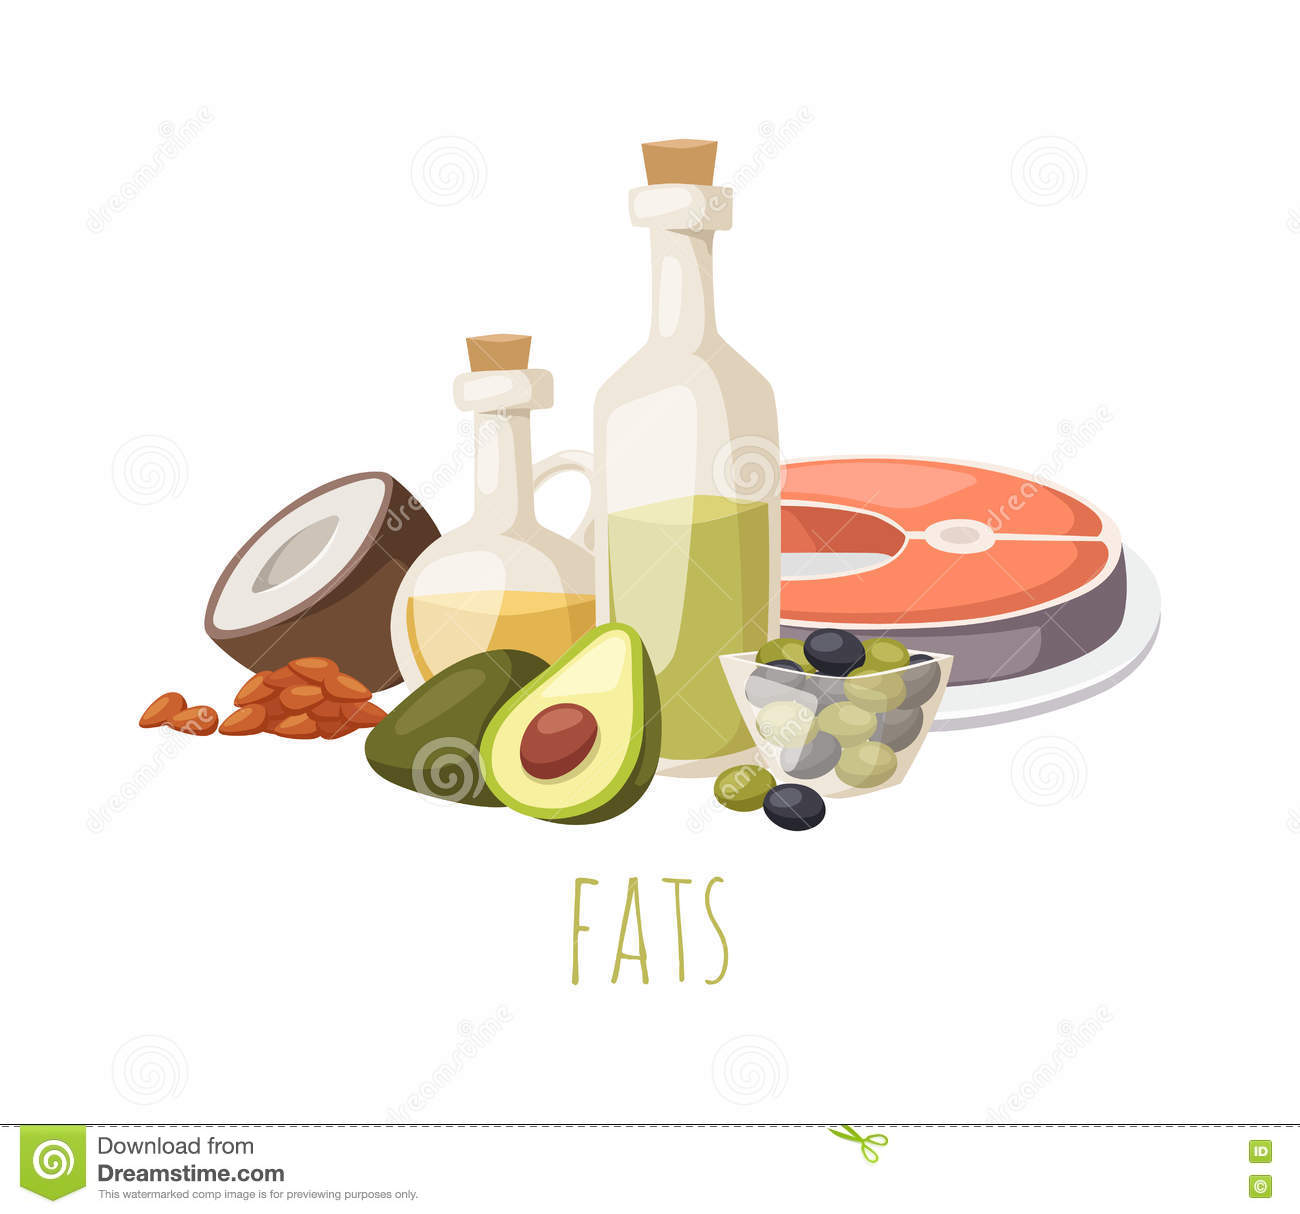 Good Fats Food Vector Illustration. Stock Vector ...